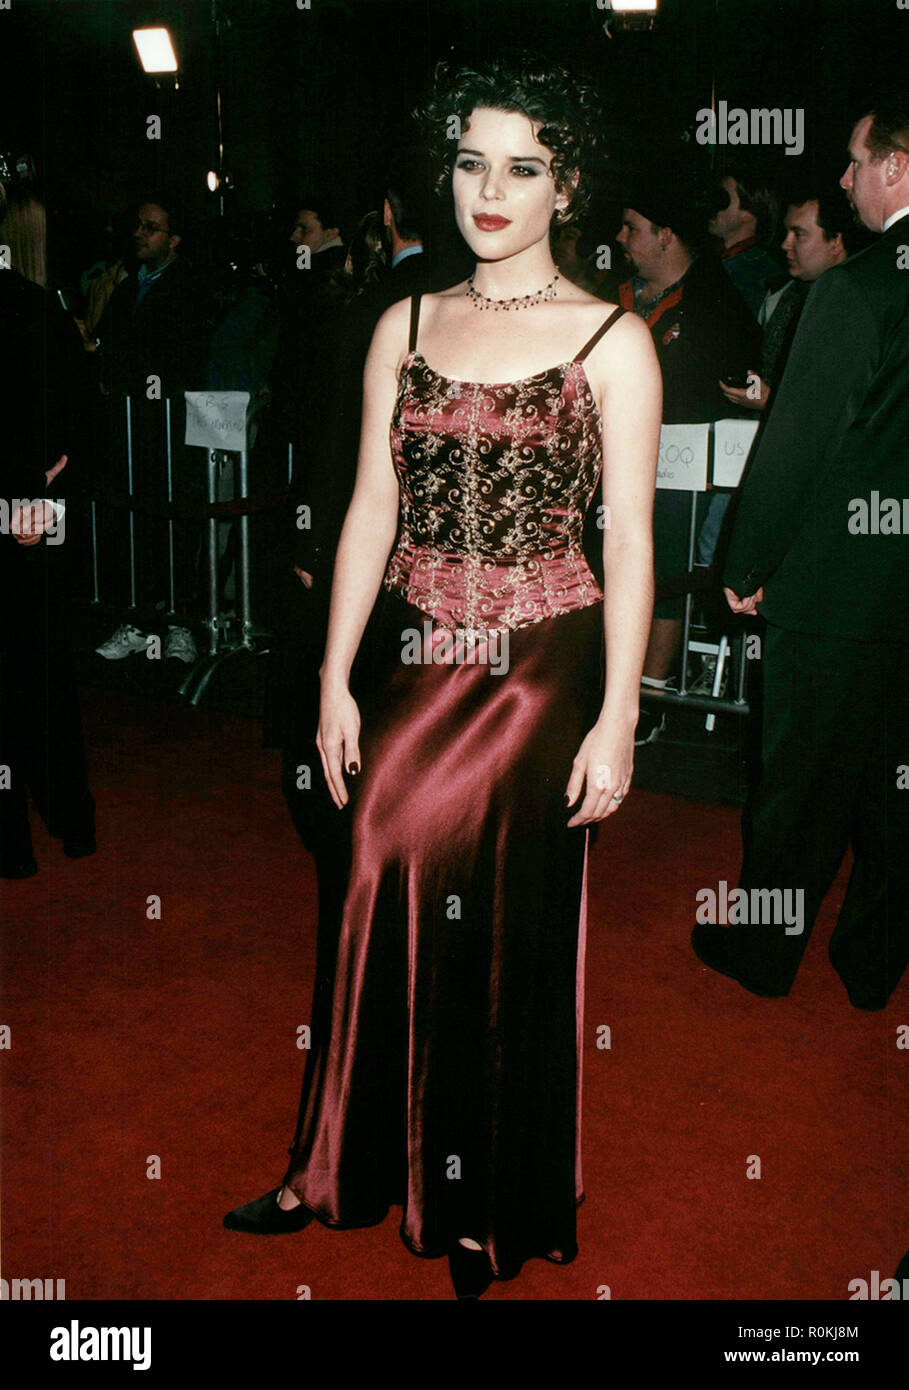 Neve Campbell 1993 High Resolution Stock Photography And Images Alamy